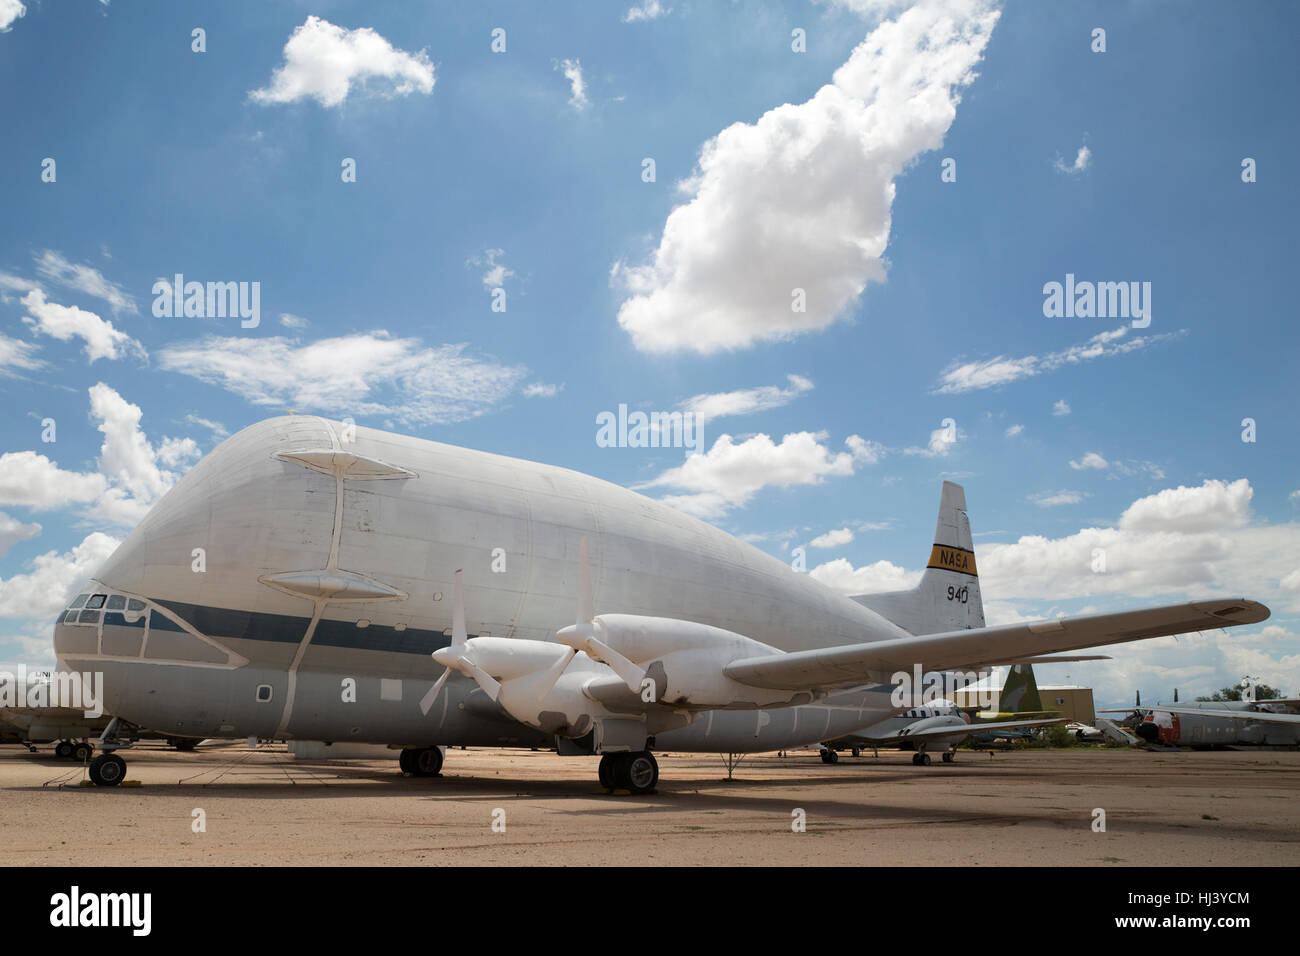 Aero Spacelines B-377SG Super Guppy Cargo Transport (1965 - 1995) on display at Pima Air & Space Museum - Stock Image